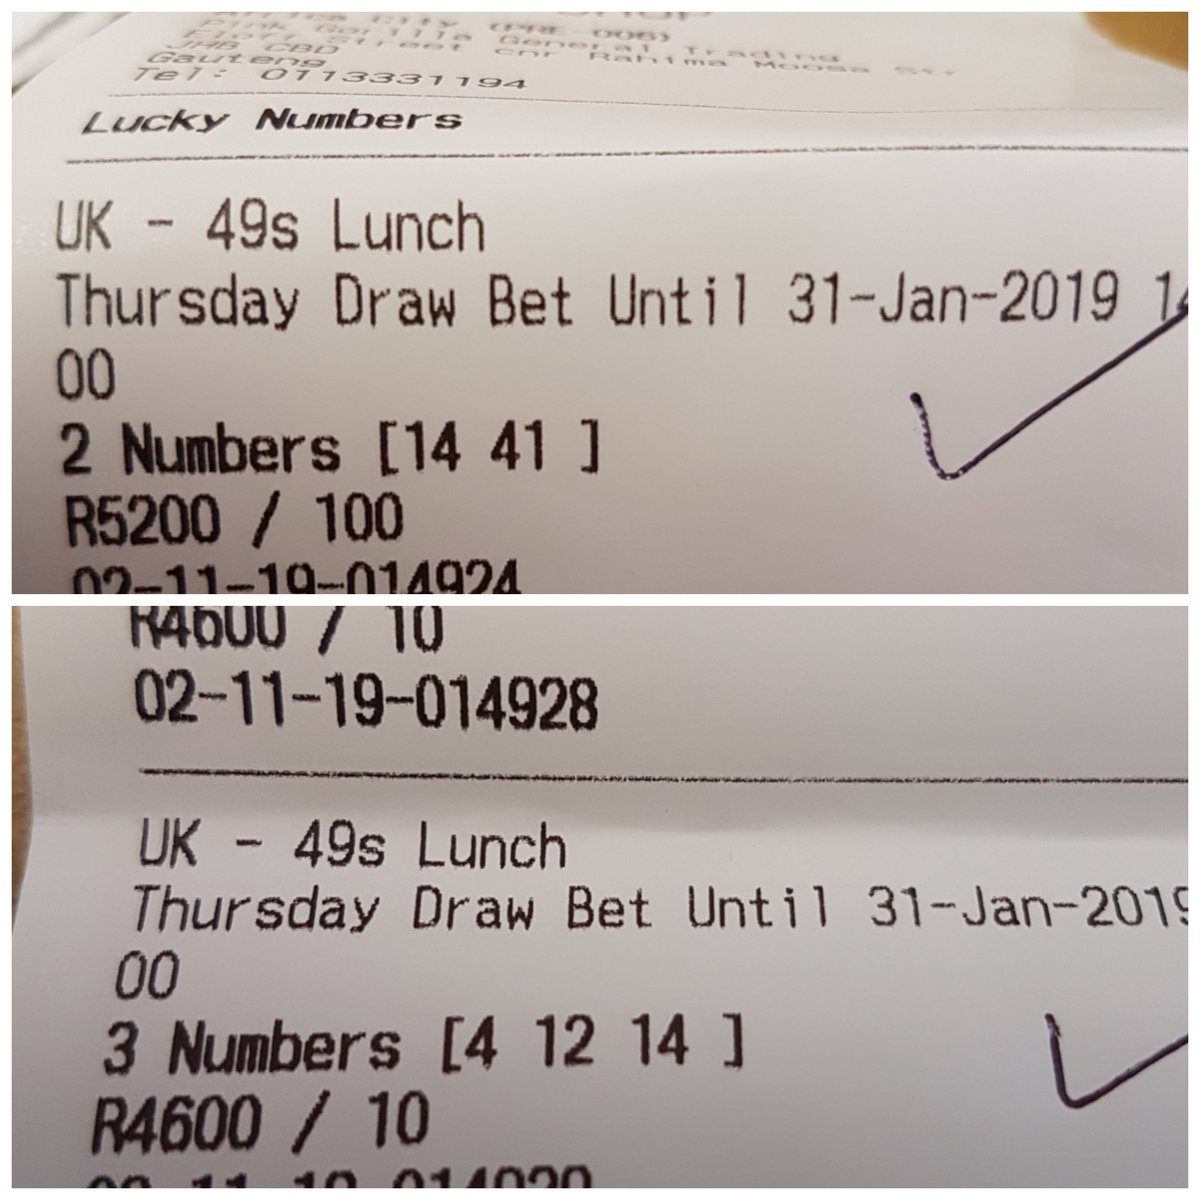 uk 49 lunchtime results 2019